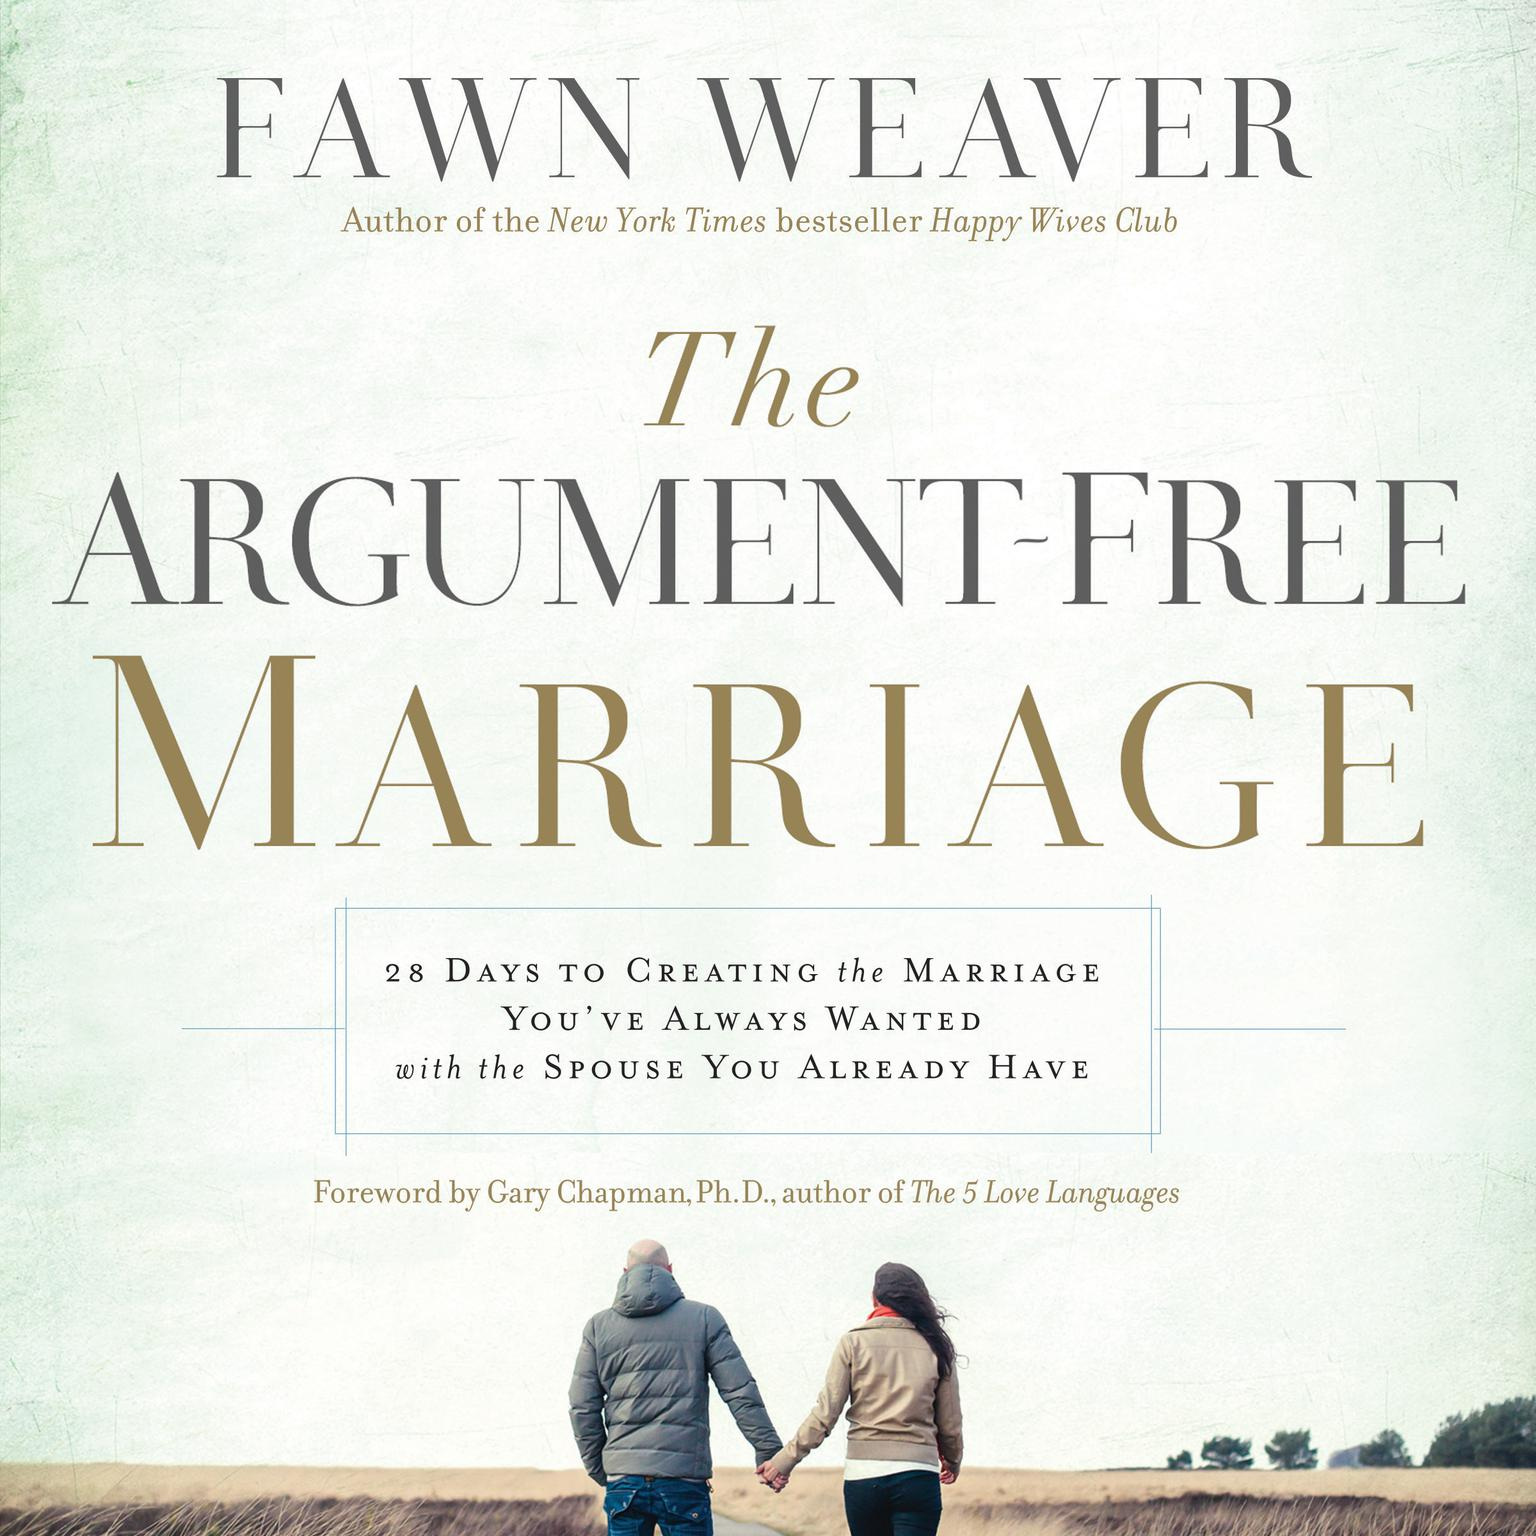 Printable The Argument-Free Marriage: 28 Days to Creating the Marriage You've Always Wanted with the Spouse You Already Have Audiobook Cover Art